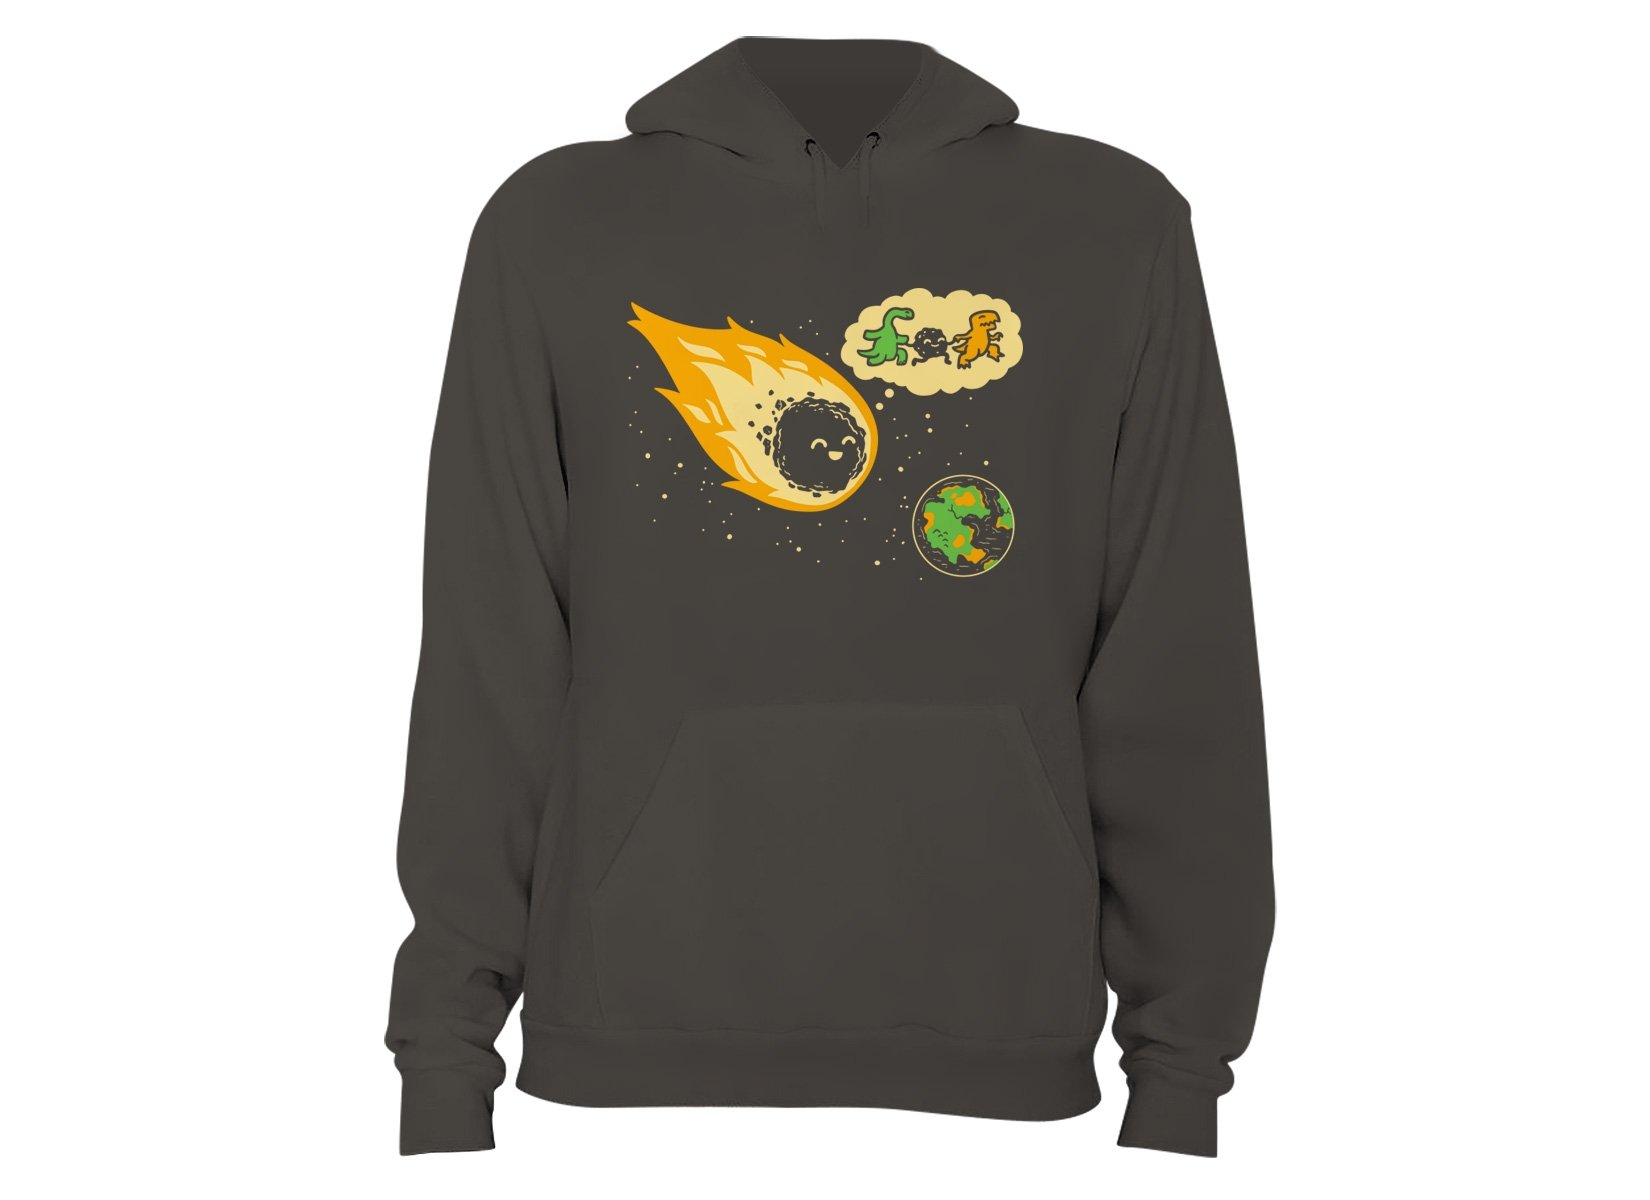 Meteor And Friends on Hoodie